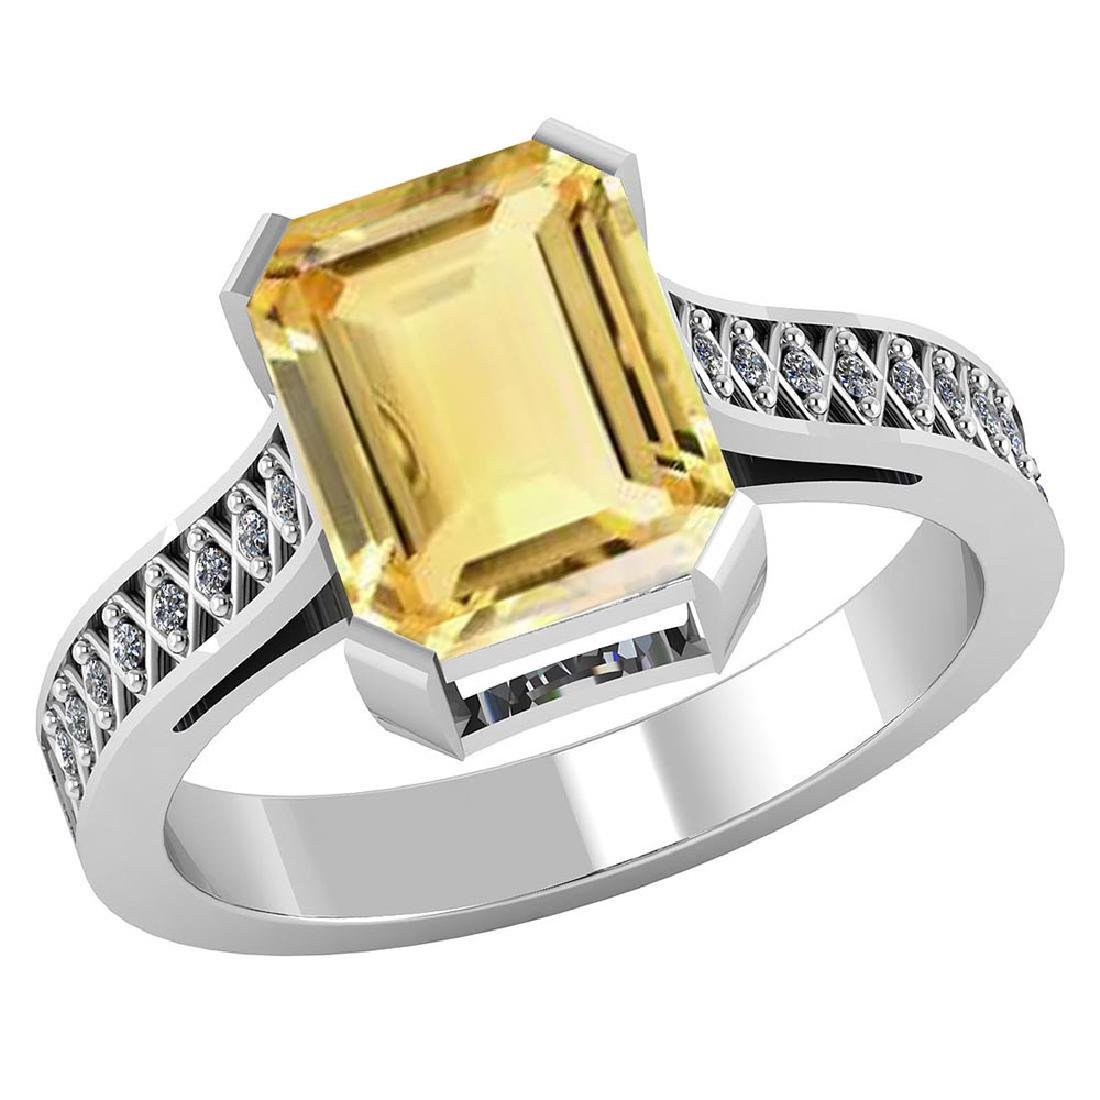 Certified 2.85 CTW Genuine Citrine And Diamond 14K Whit